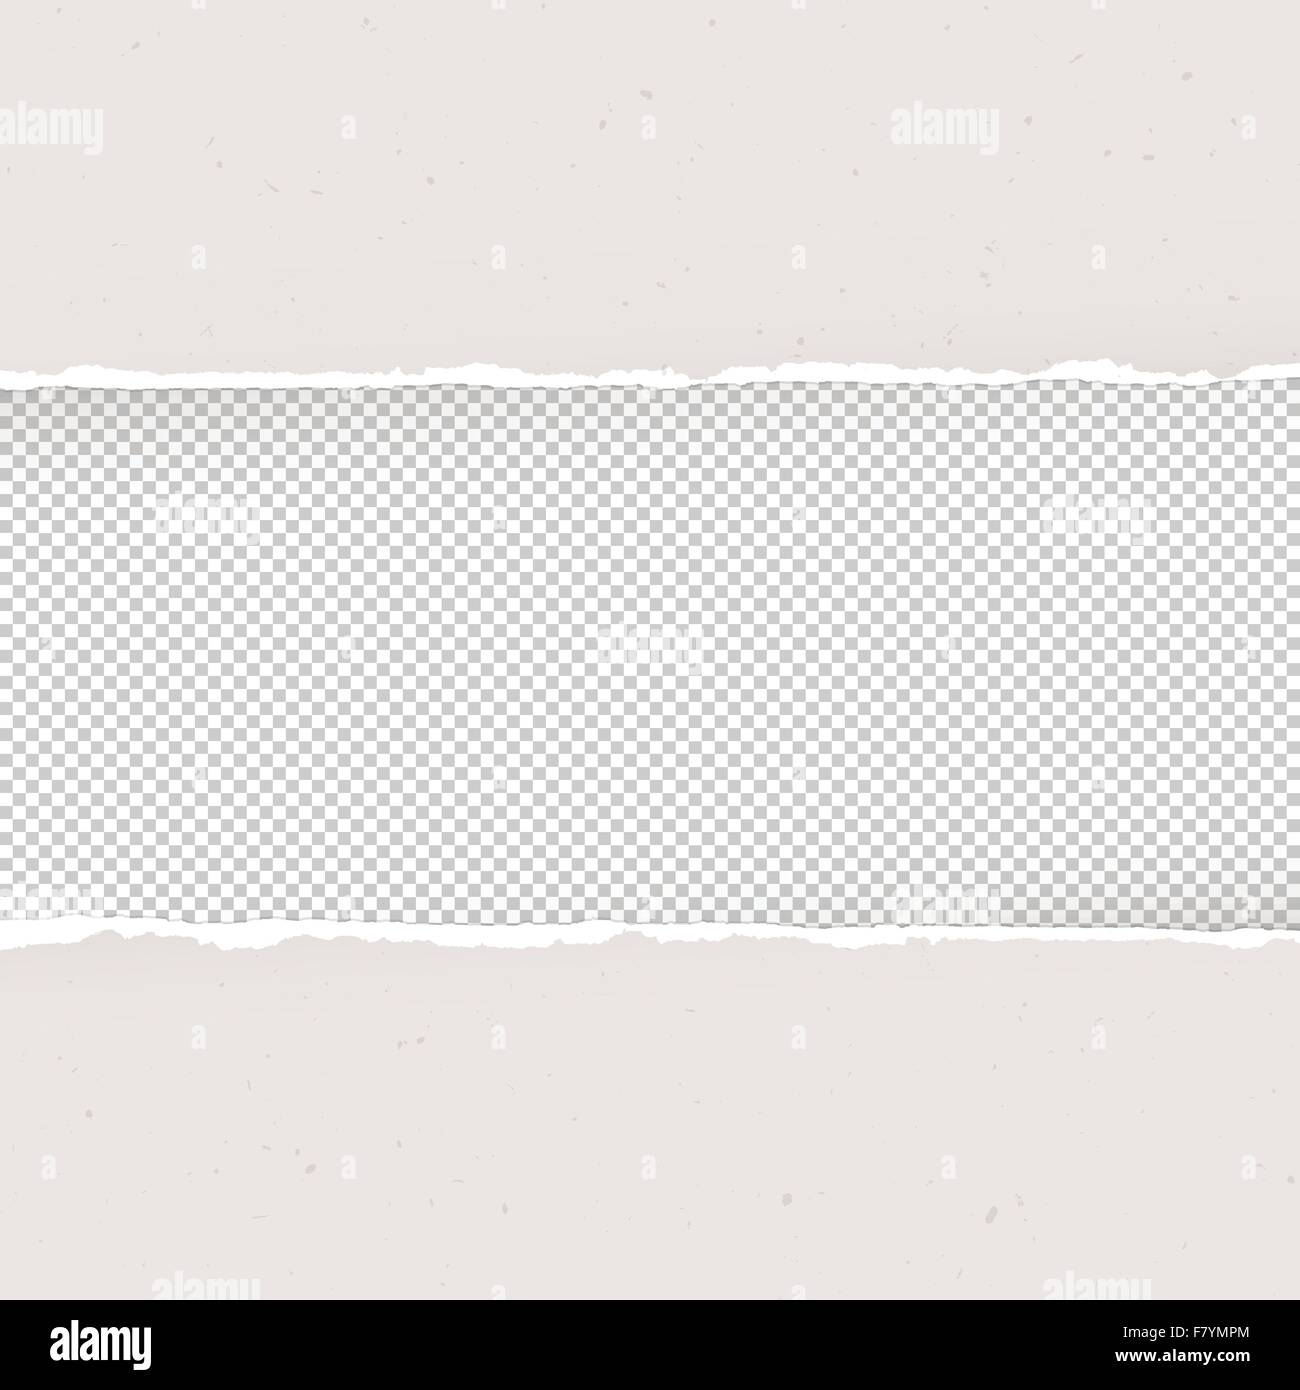 torn paper on transparent background. design template, vector stock